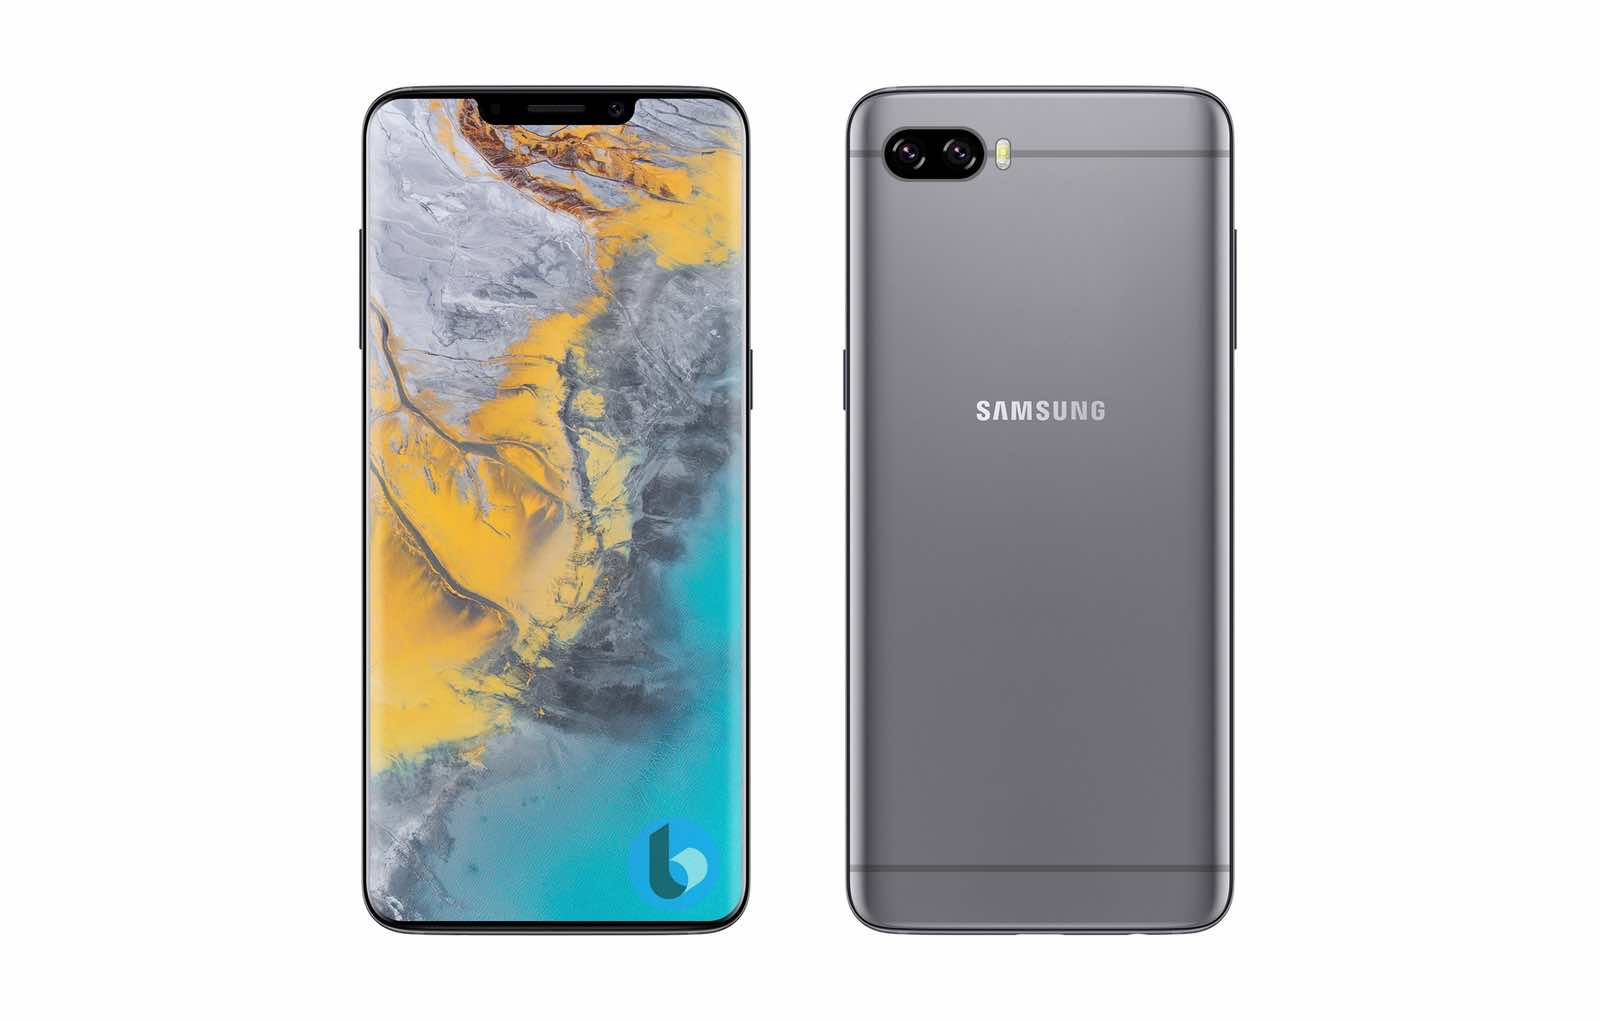 Samsung Galaxy S10 like iPhone X Geskin concept 1